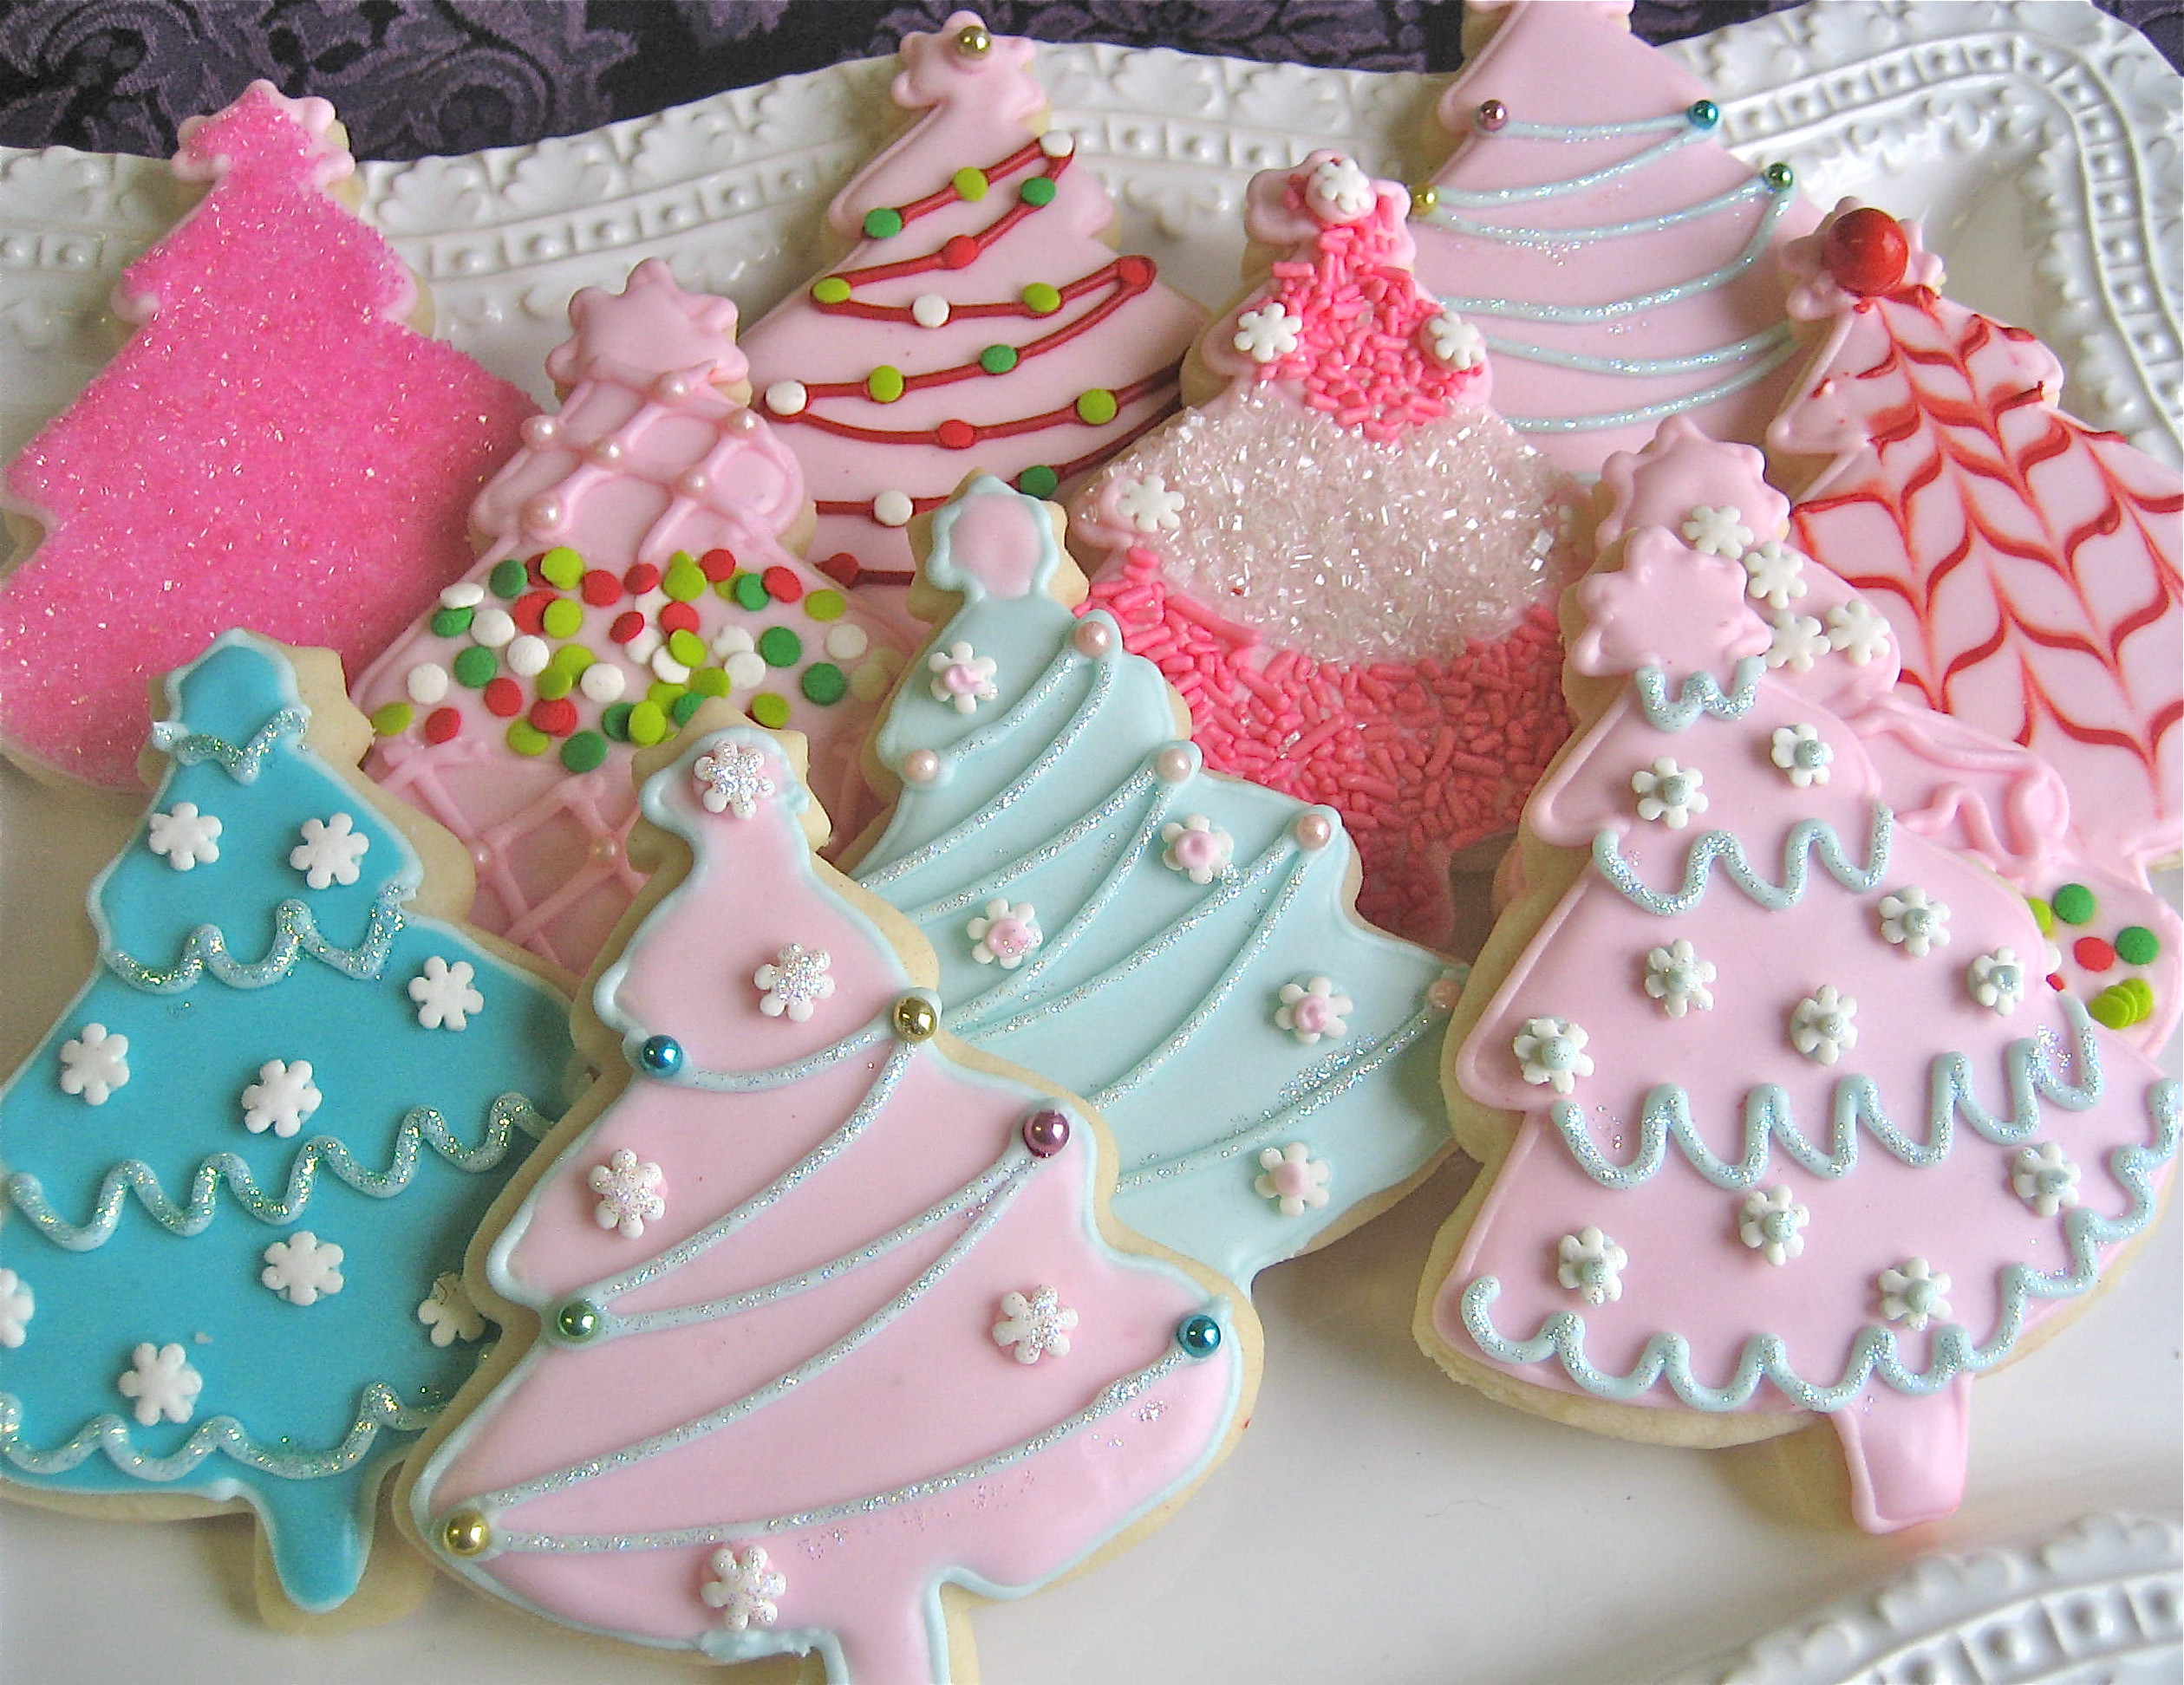 Christmas Cut Out Cookies  Christmas Cutout Cookies – Ornaments & Trees